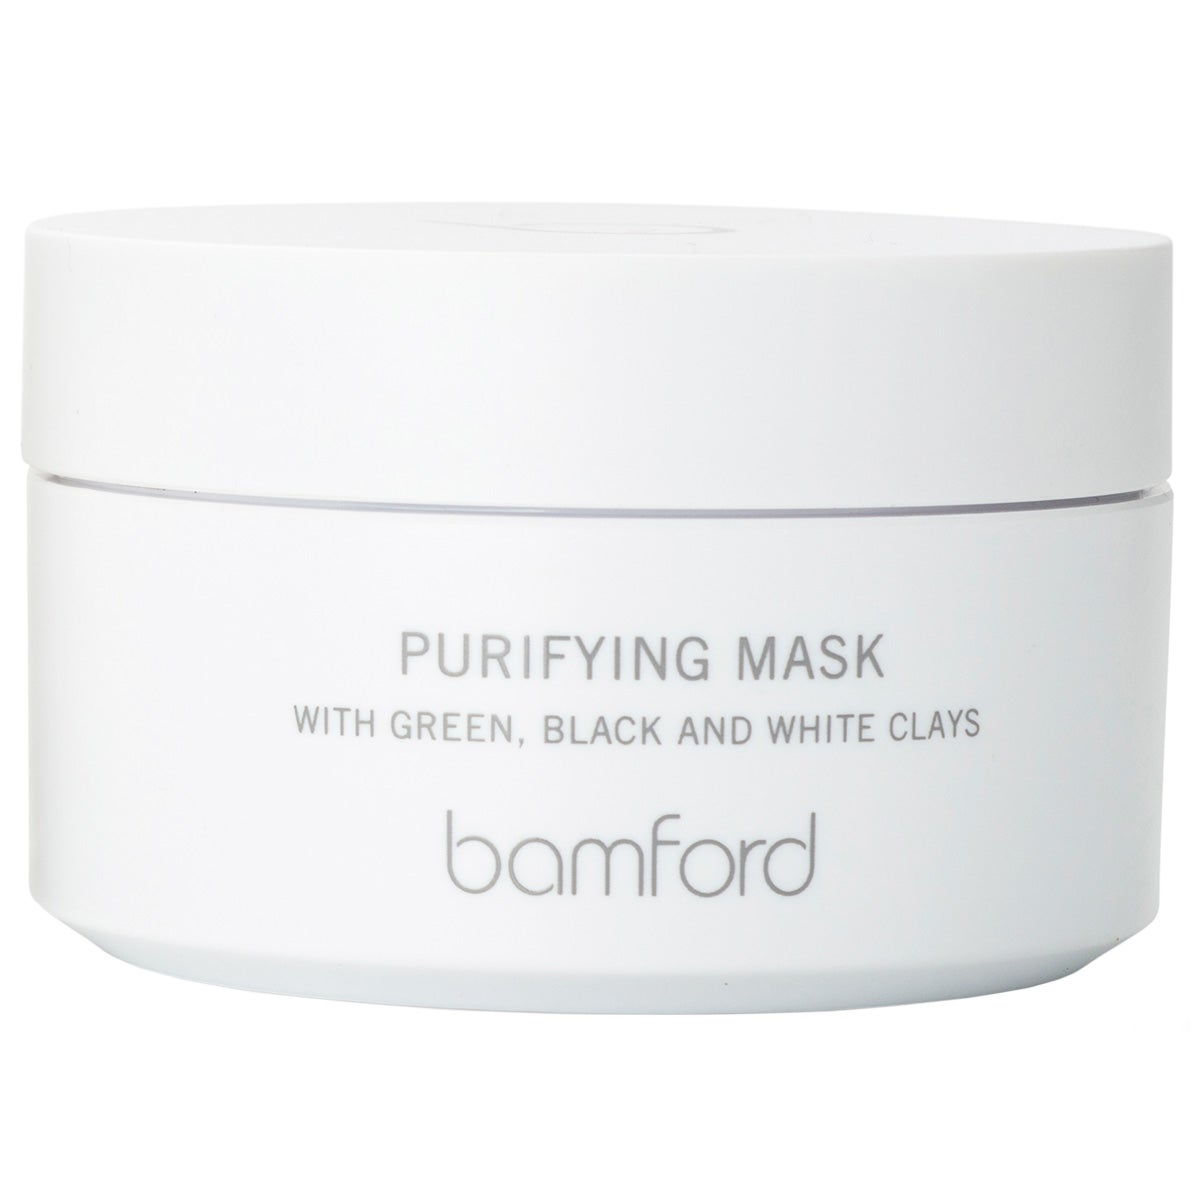 Bamford Purifying Mask